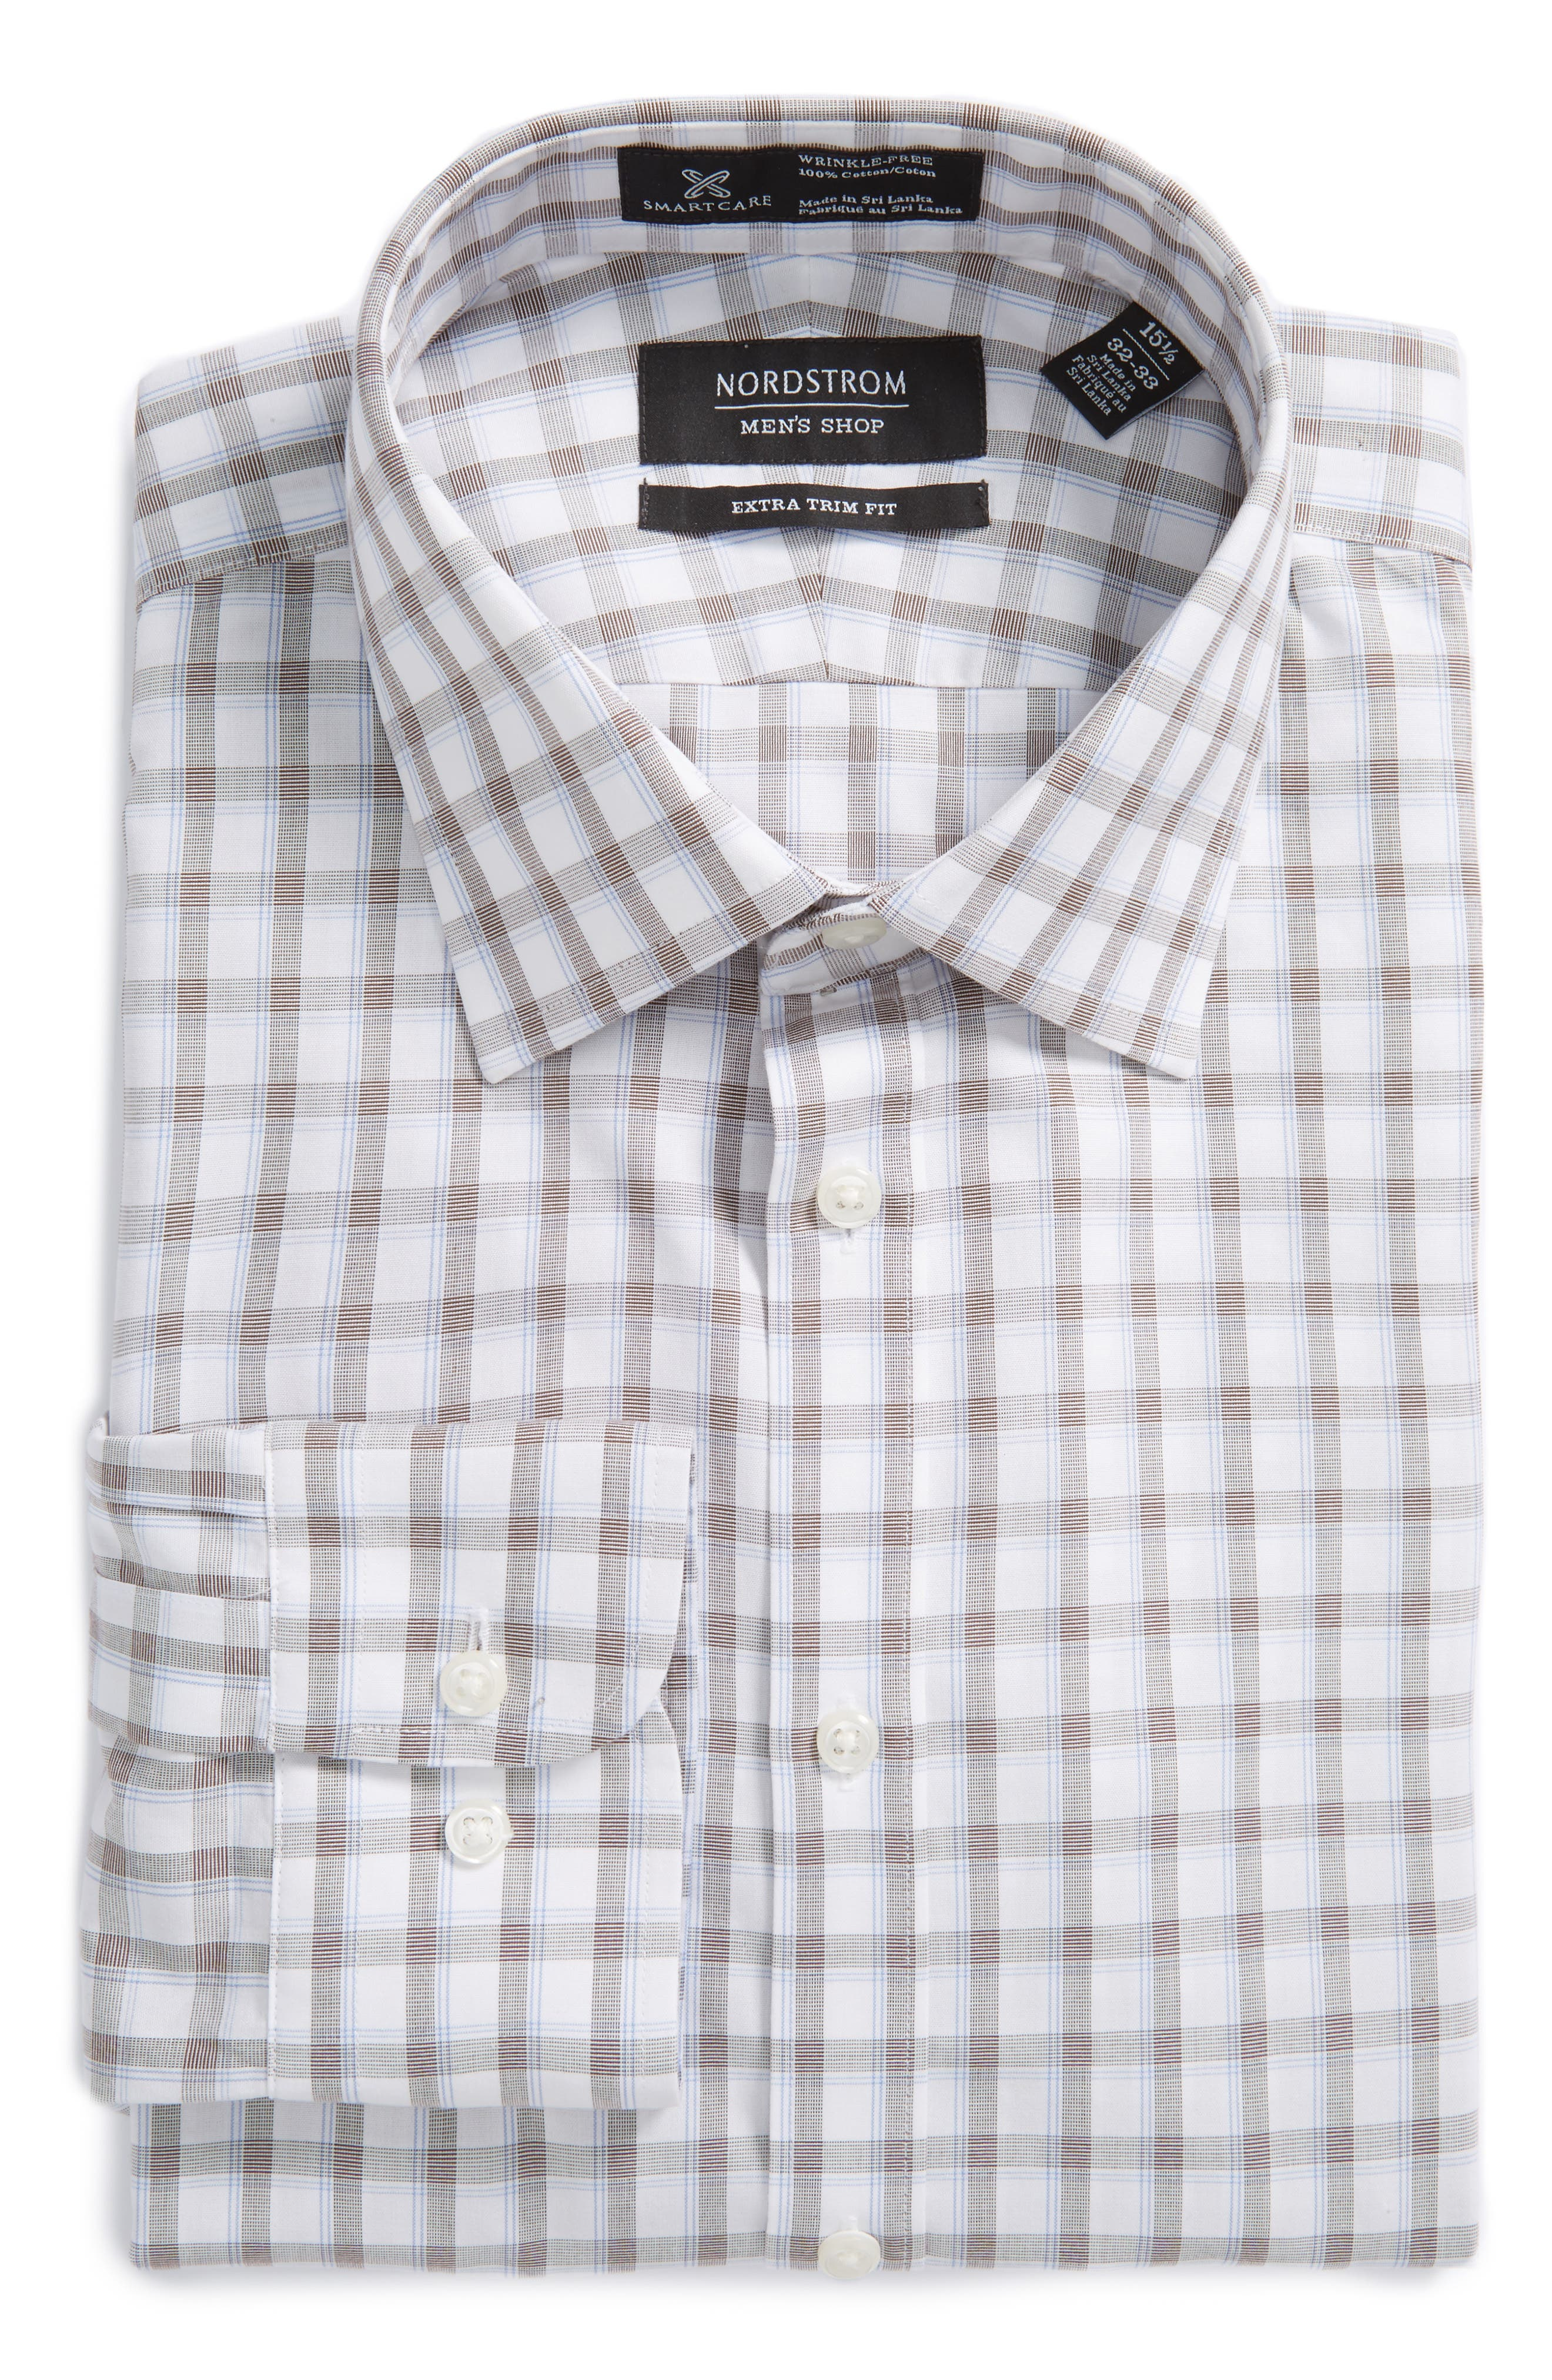 Nordstrom Men's Shop Smartcare™ Extra Trim Fit Plaid Dress Shirt